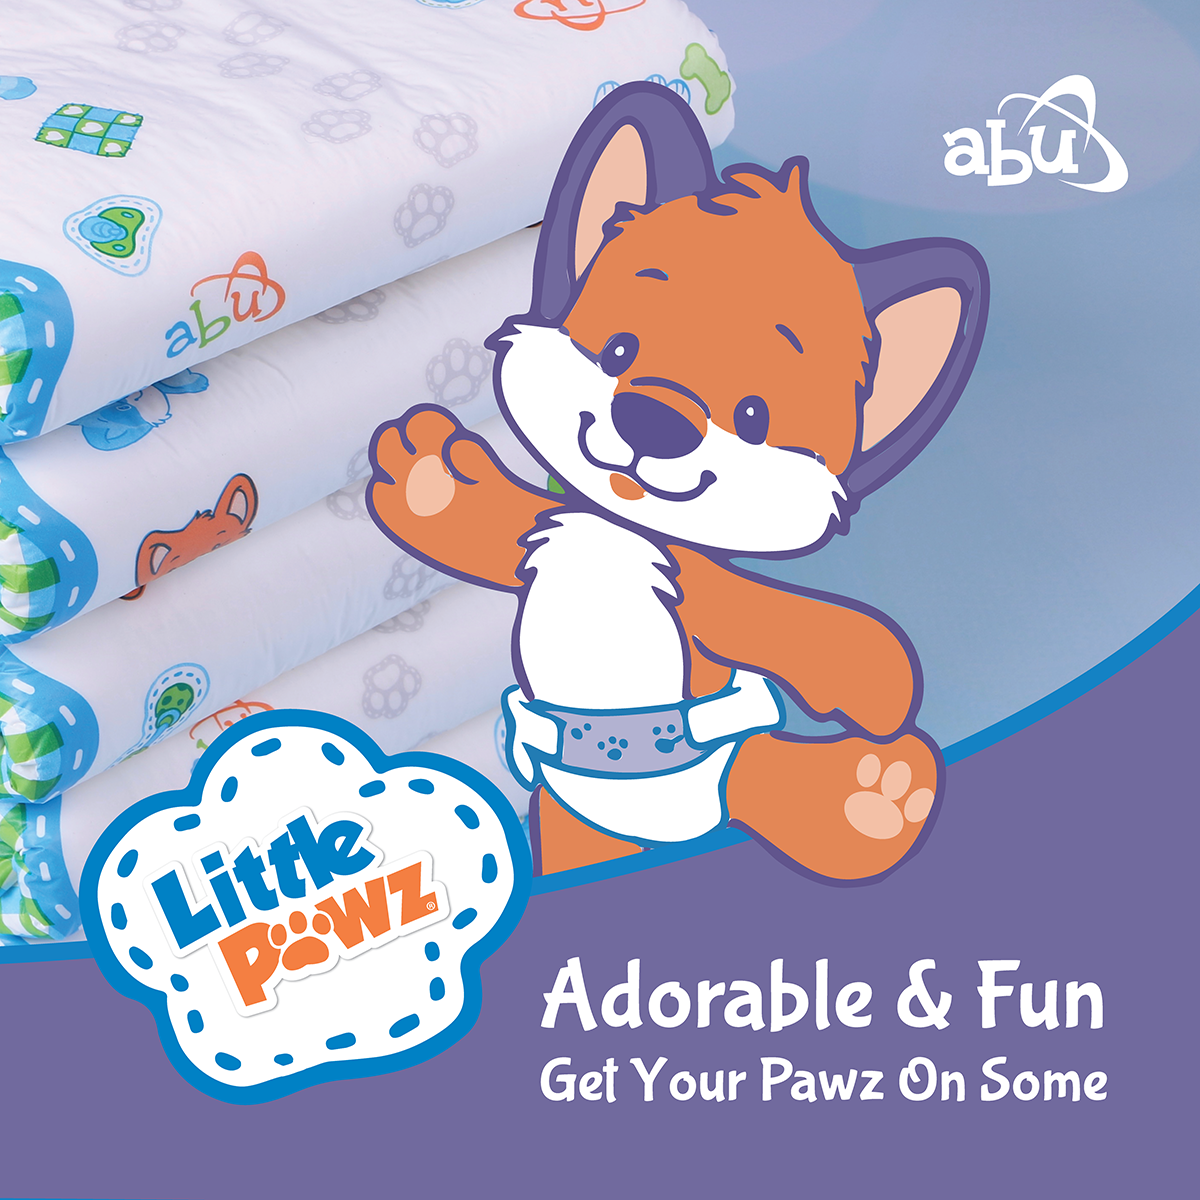 ABU LittlePawz Diapers